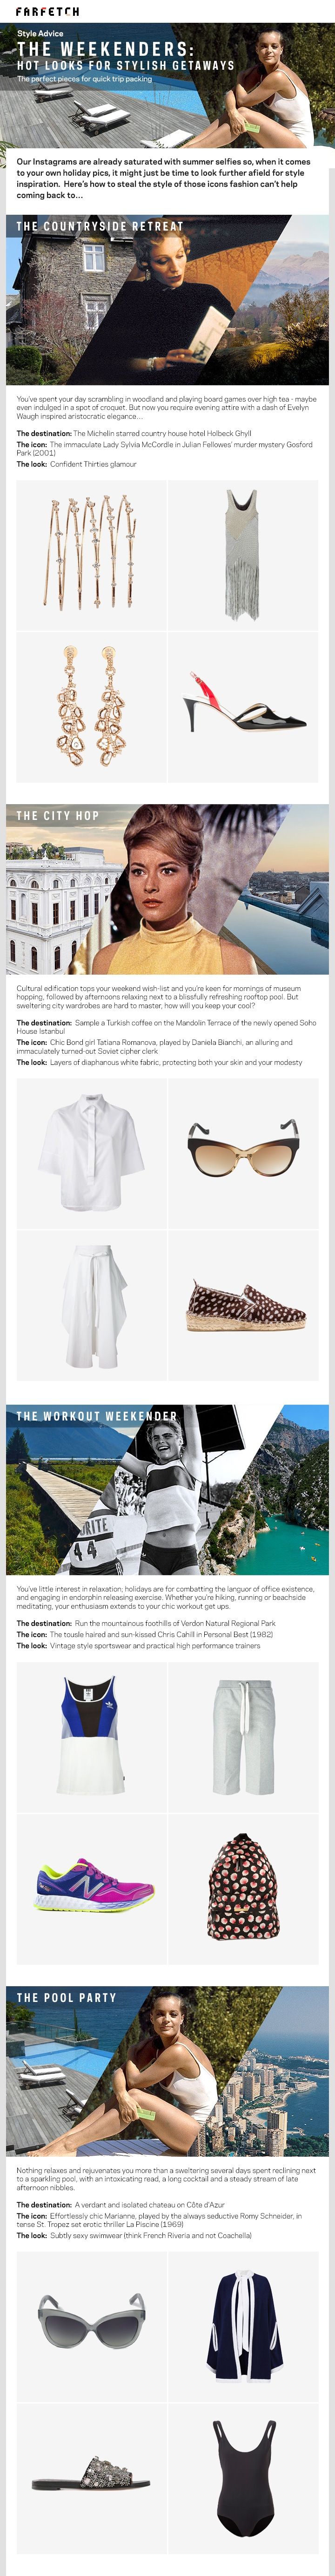 Hot Looks for a Stylish Getaway Infographic